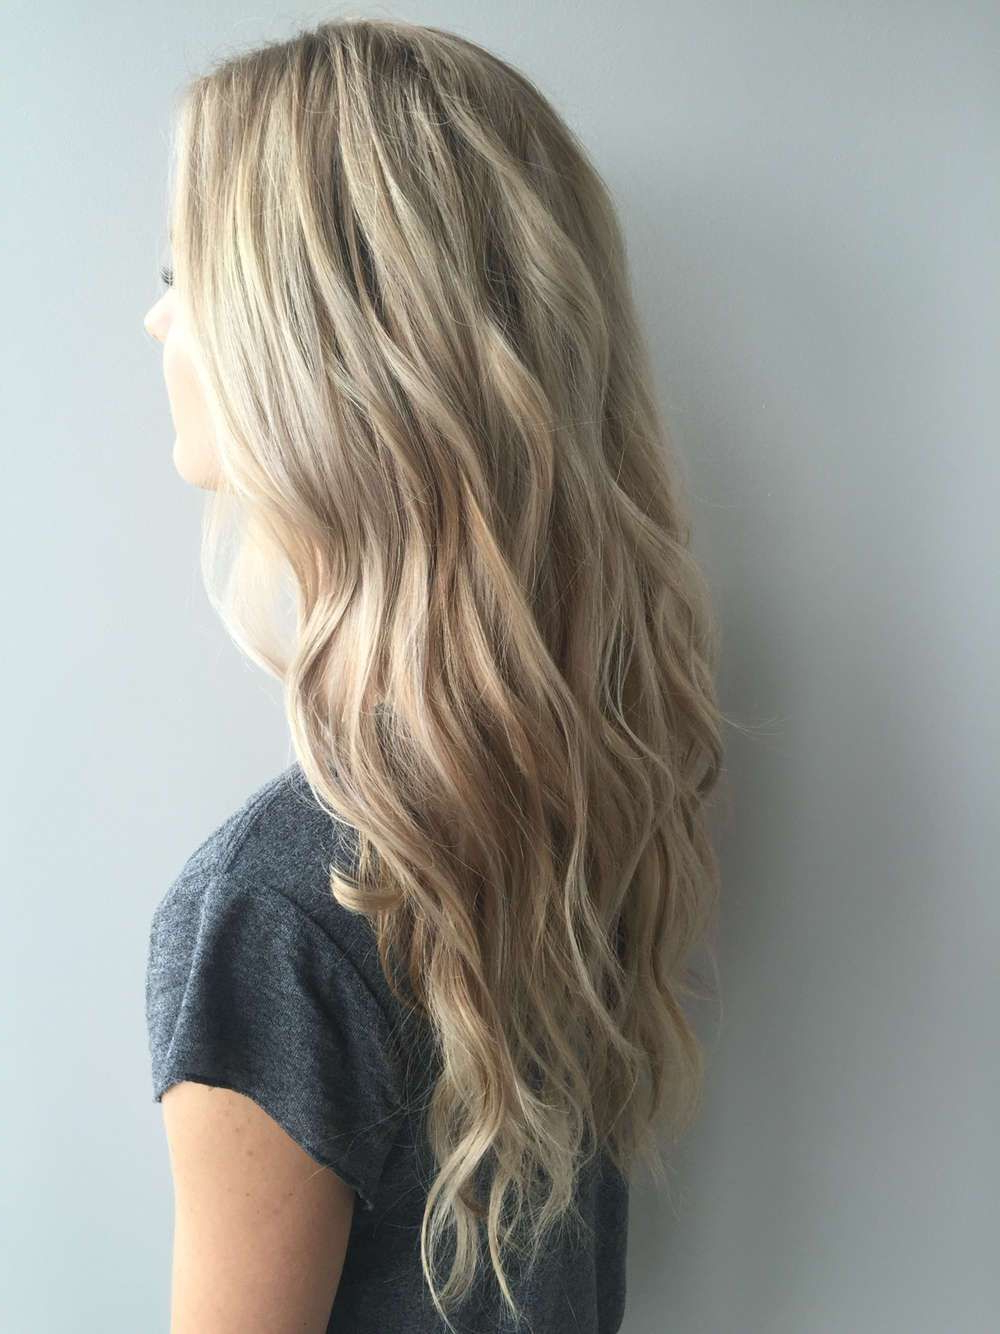 Dirty Blonde Hair Ideas Color 39 | Hair Styles | Pinterest | Blondes Intended For Dirty Blonde Pixie Hairstyles With Bright Highlights (View 14 of 20)